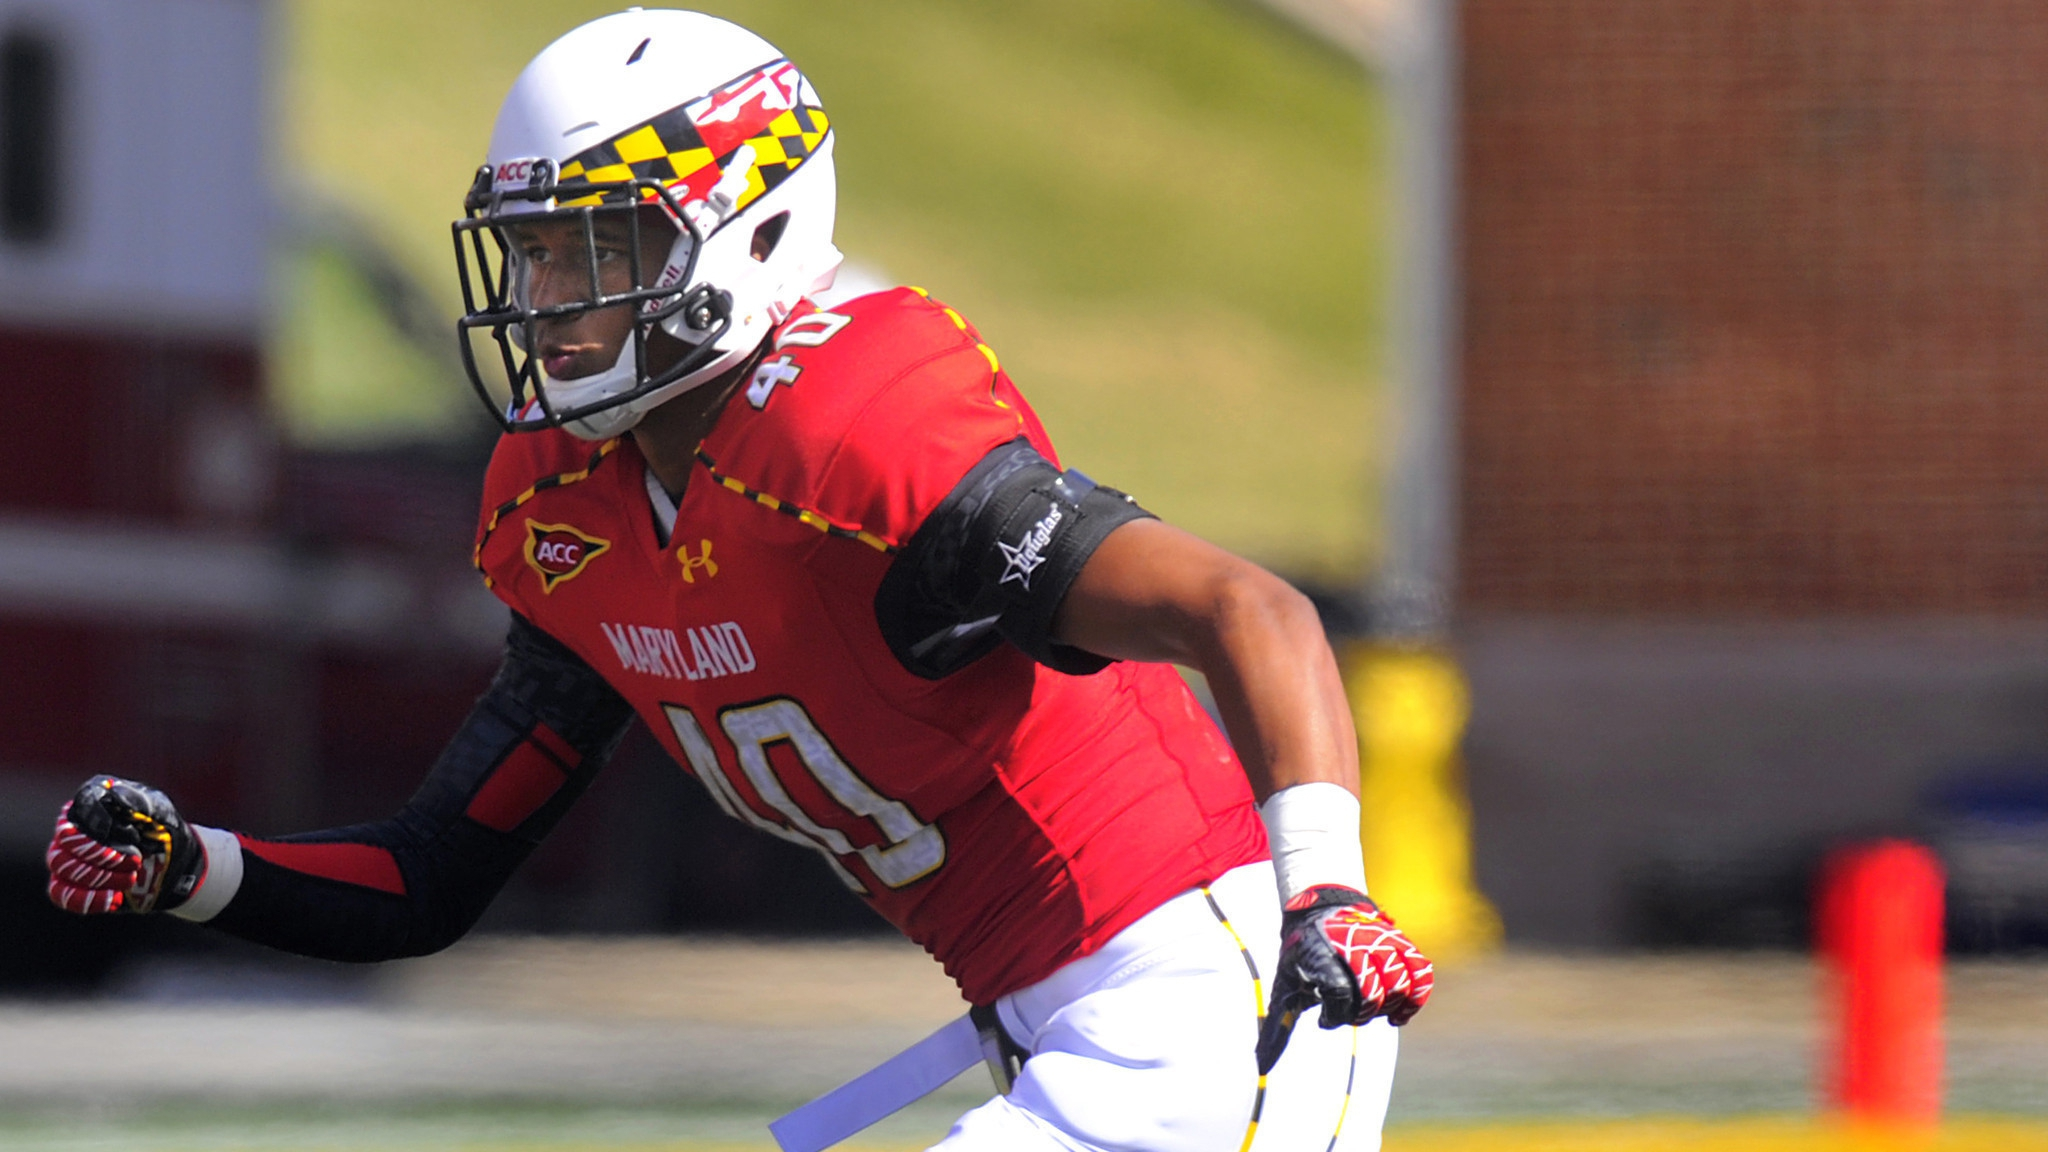 Maryland Terps Hd